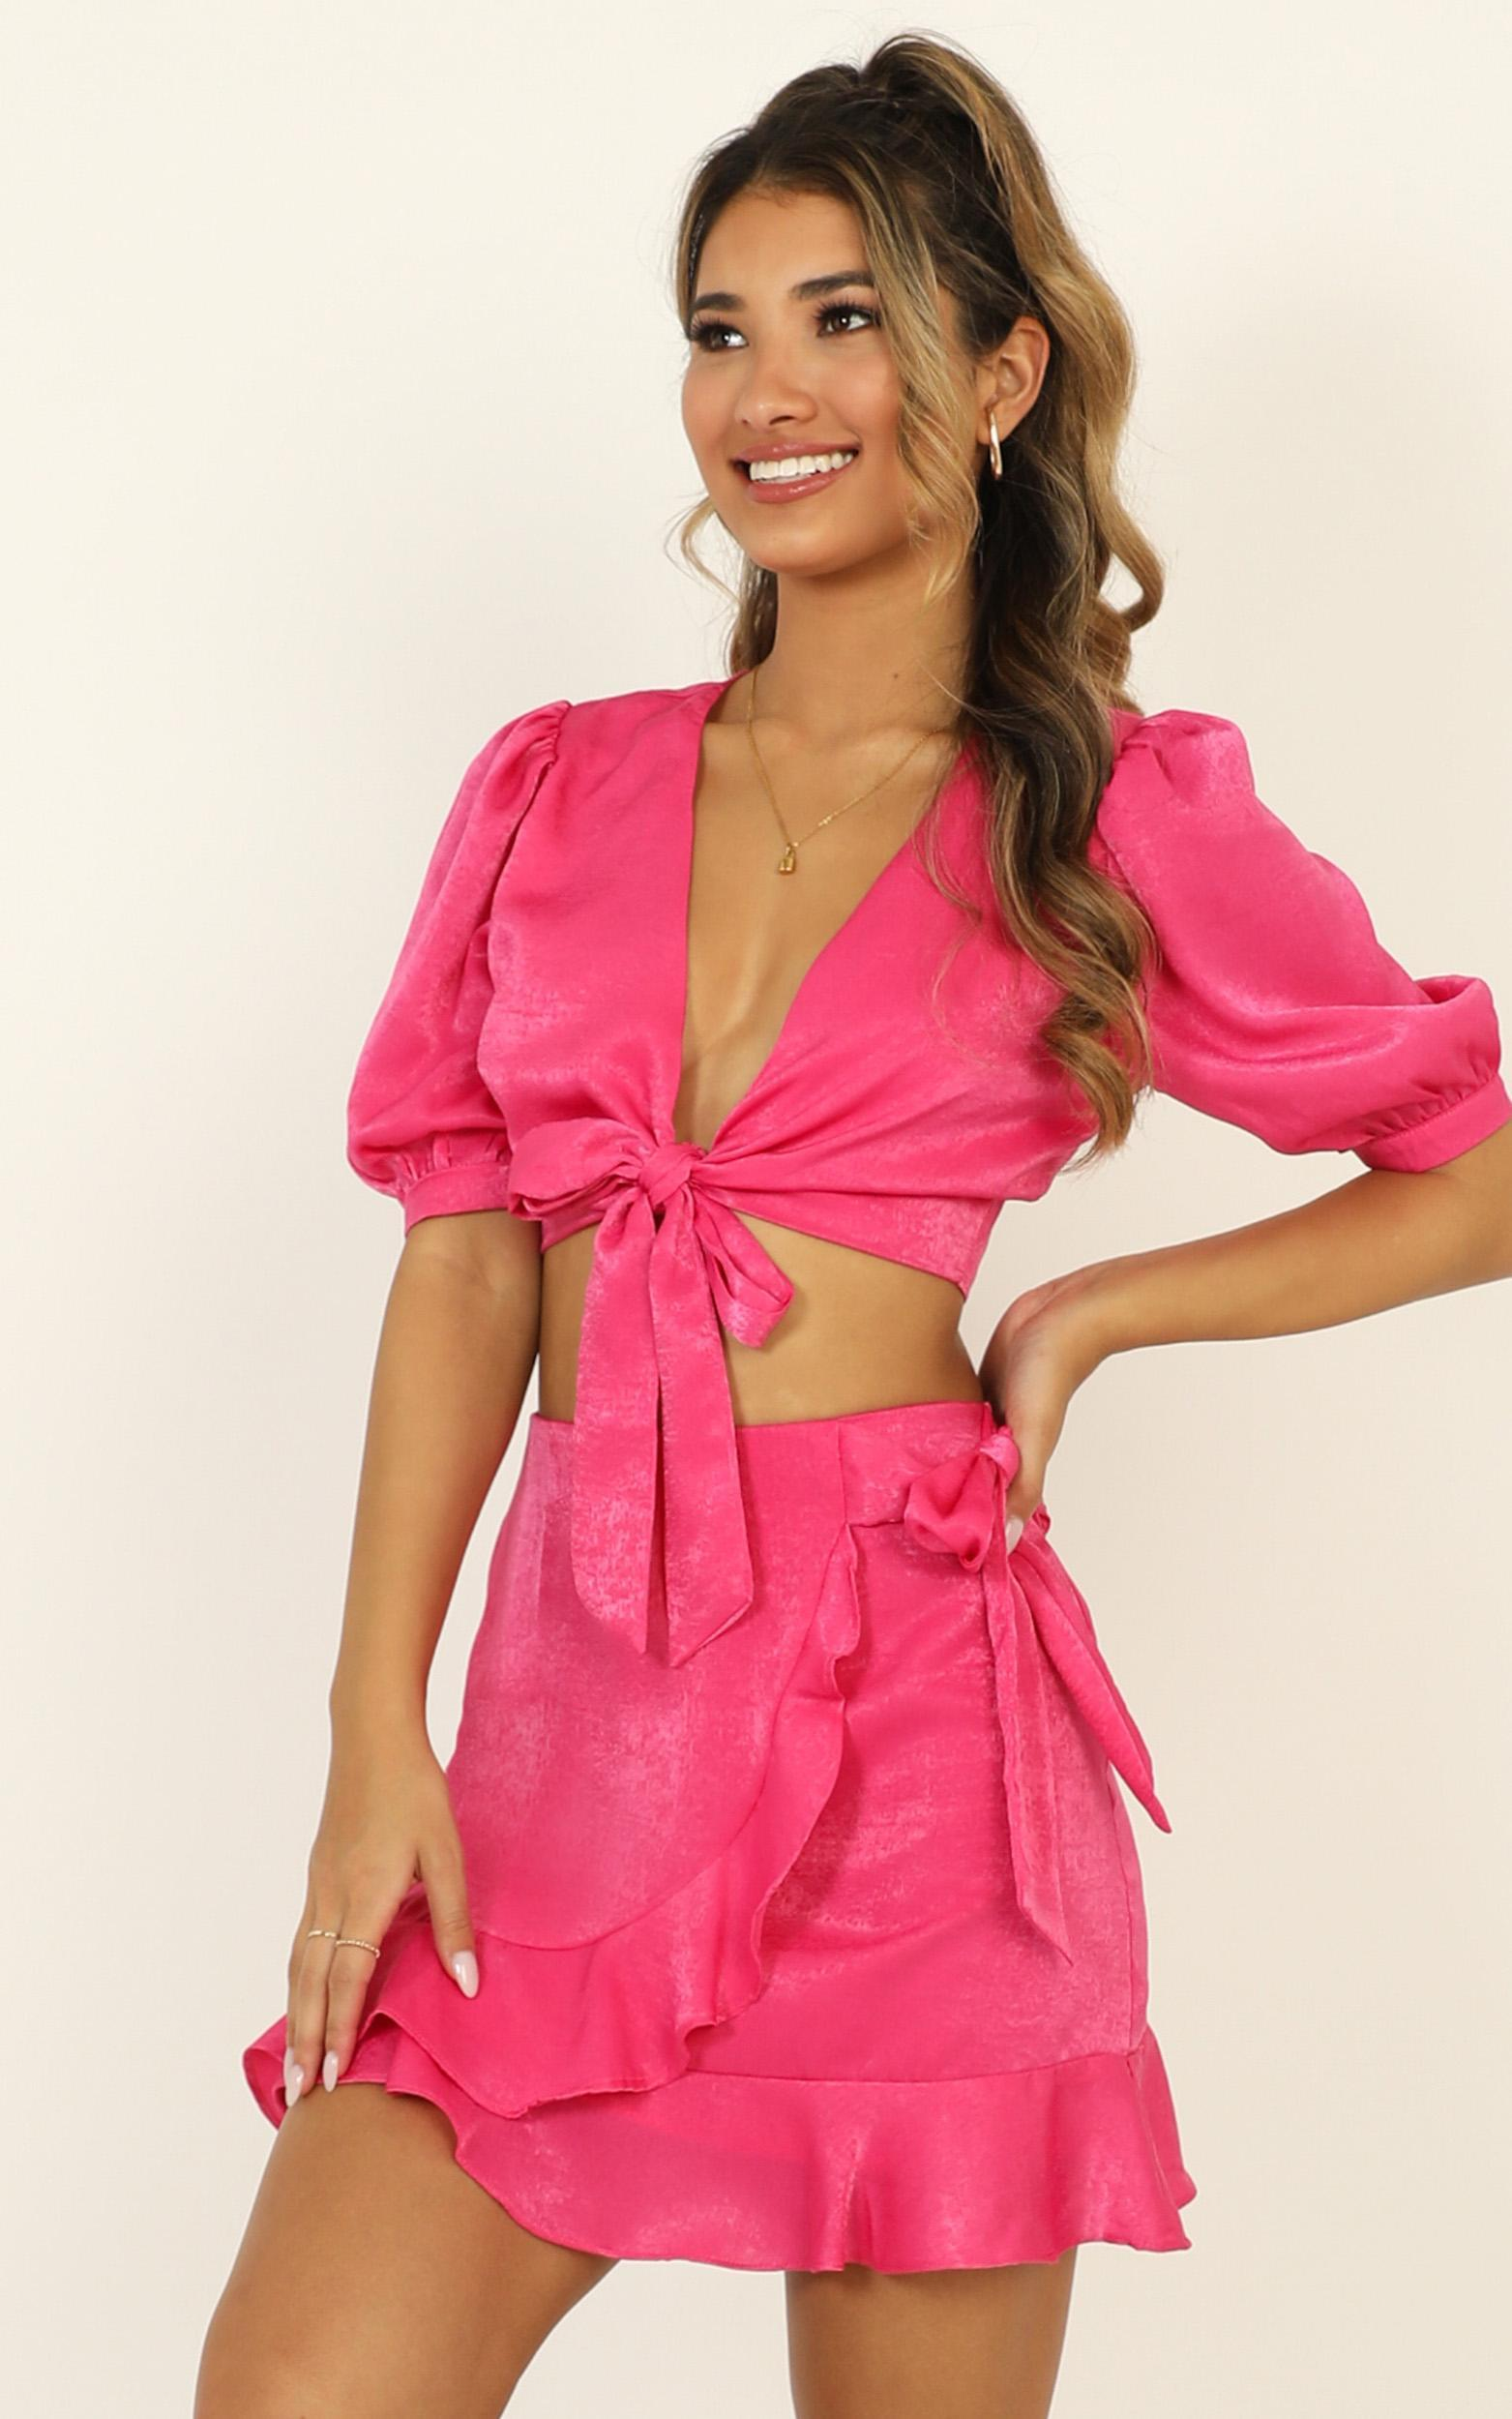 Best Of Both Worlds Two Piece Set In Hot Pink Satin - 20 (XXXXL), Pink, hi-res image number null